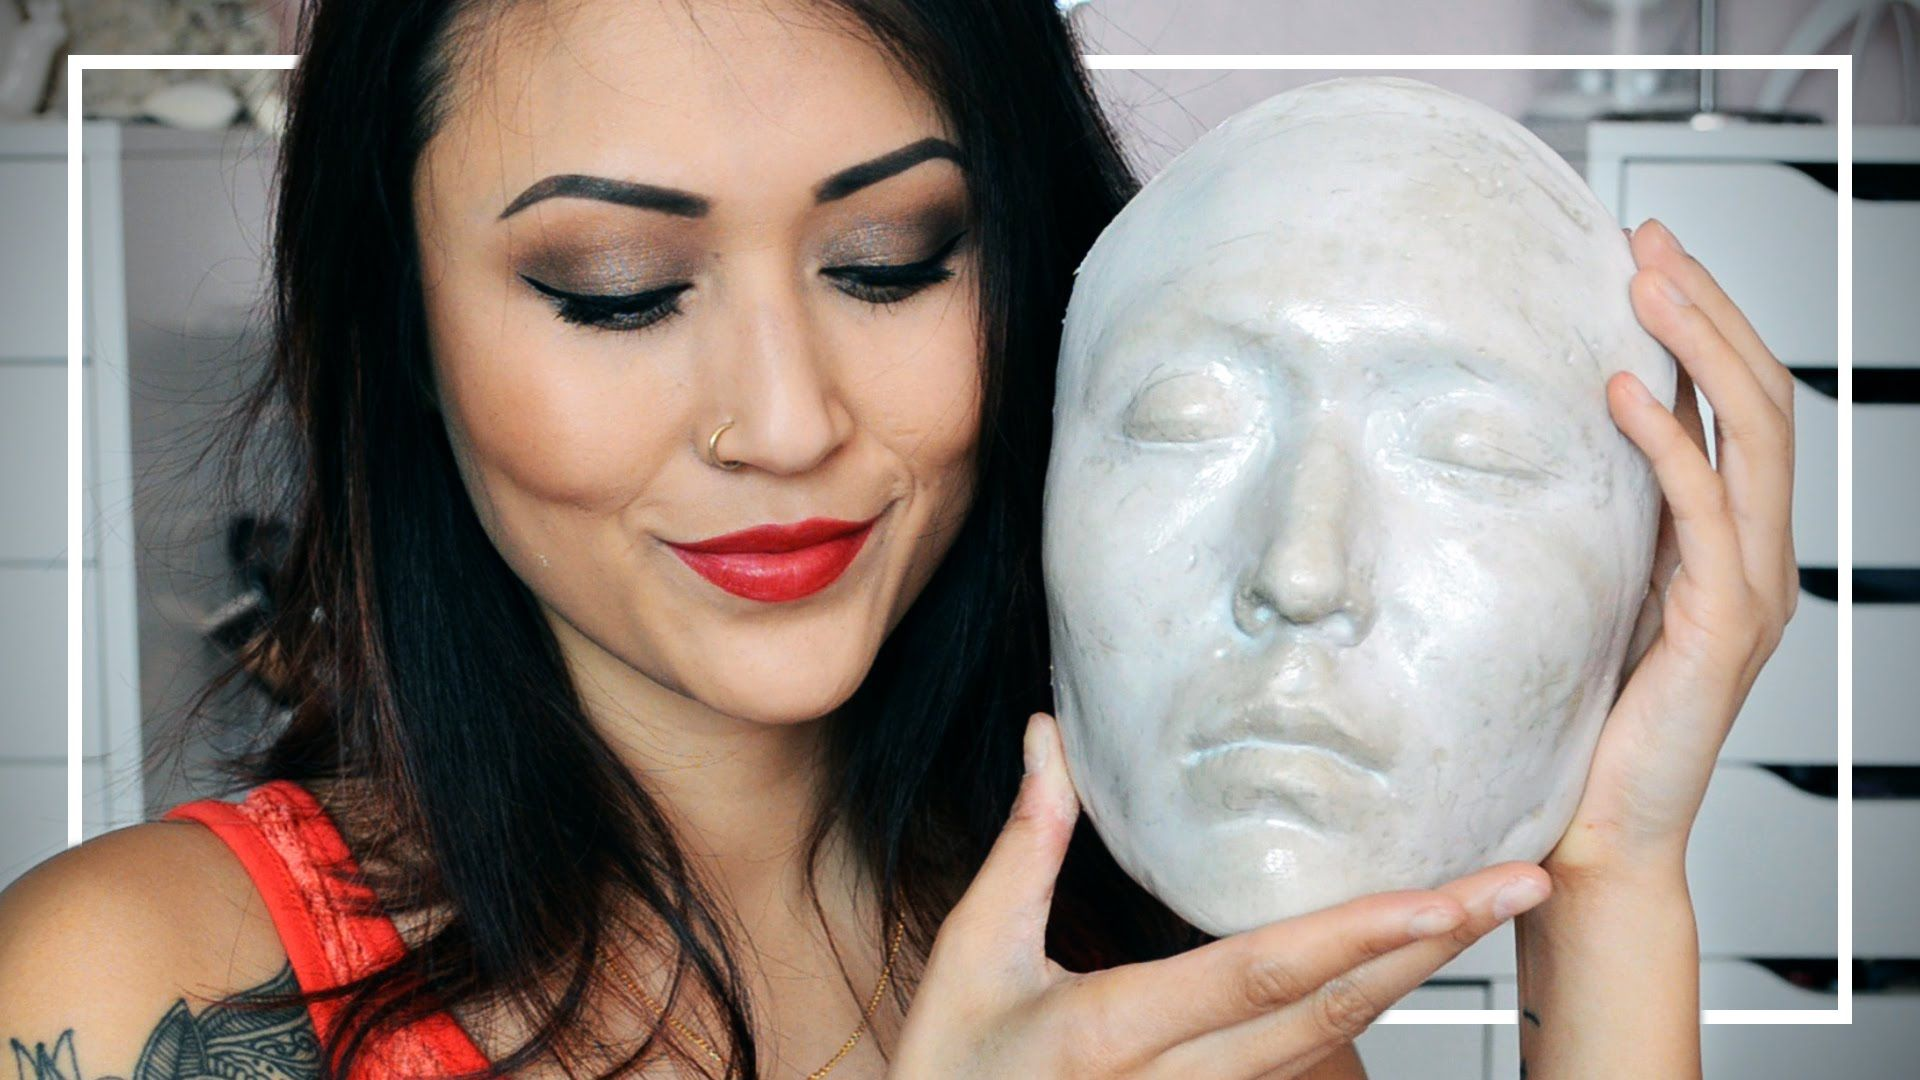 In this diy i will show you the tutorial on how to make a face cast